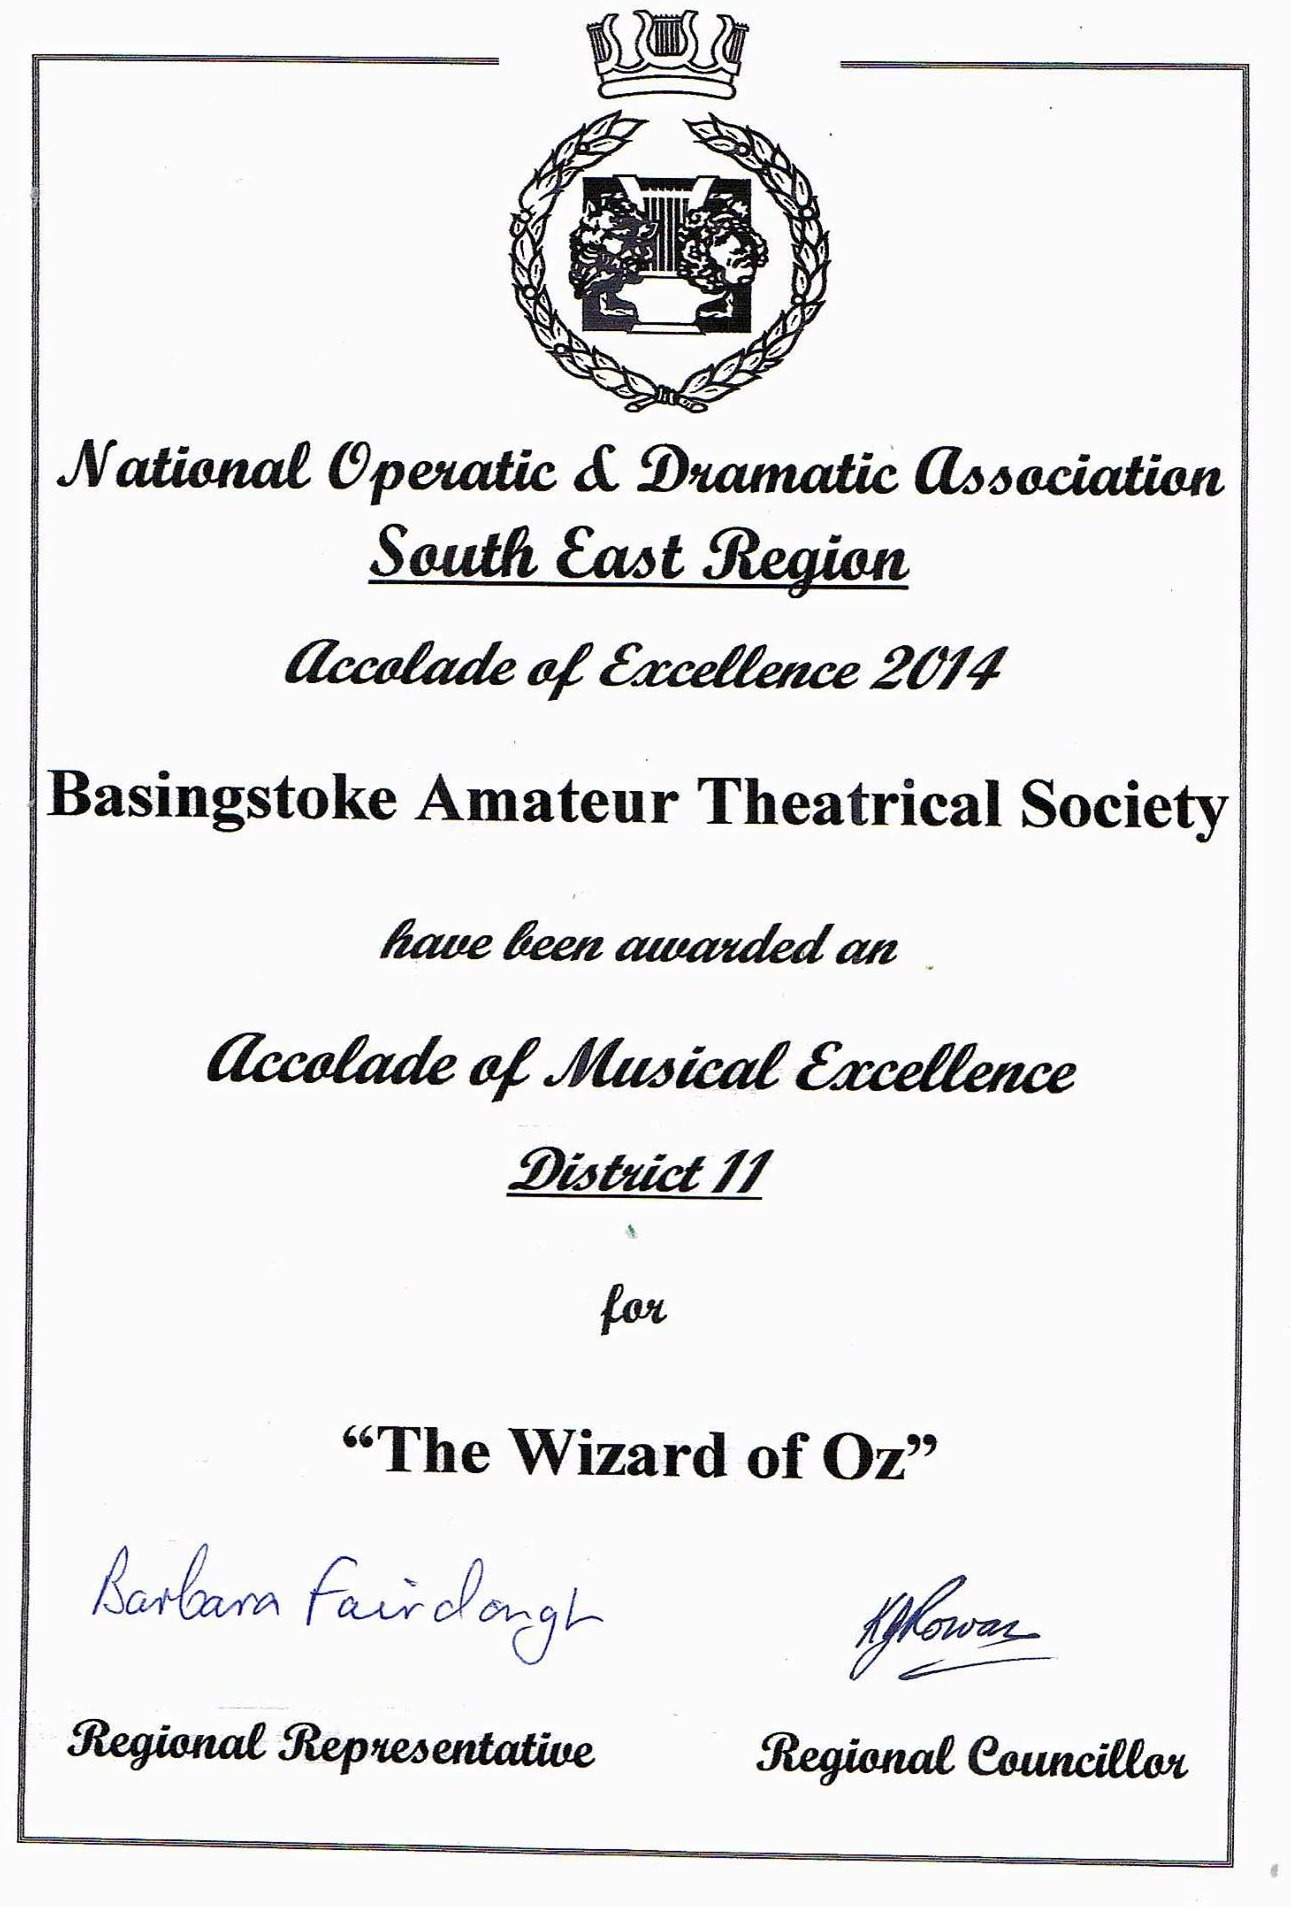 NODA accolade of excellence certificate for The Wizard of Oz, BATS